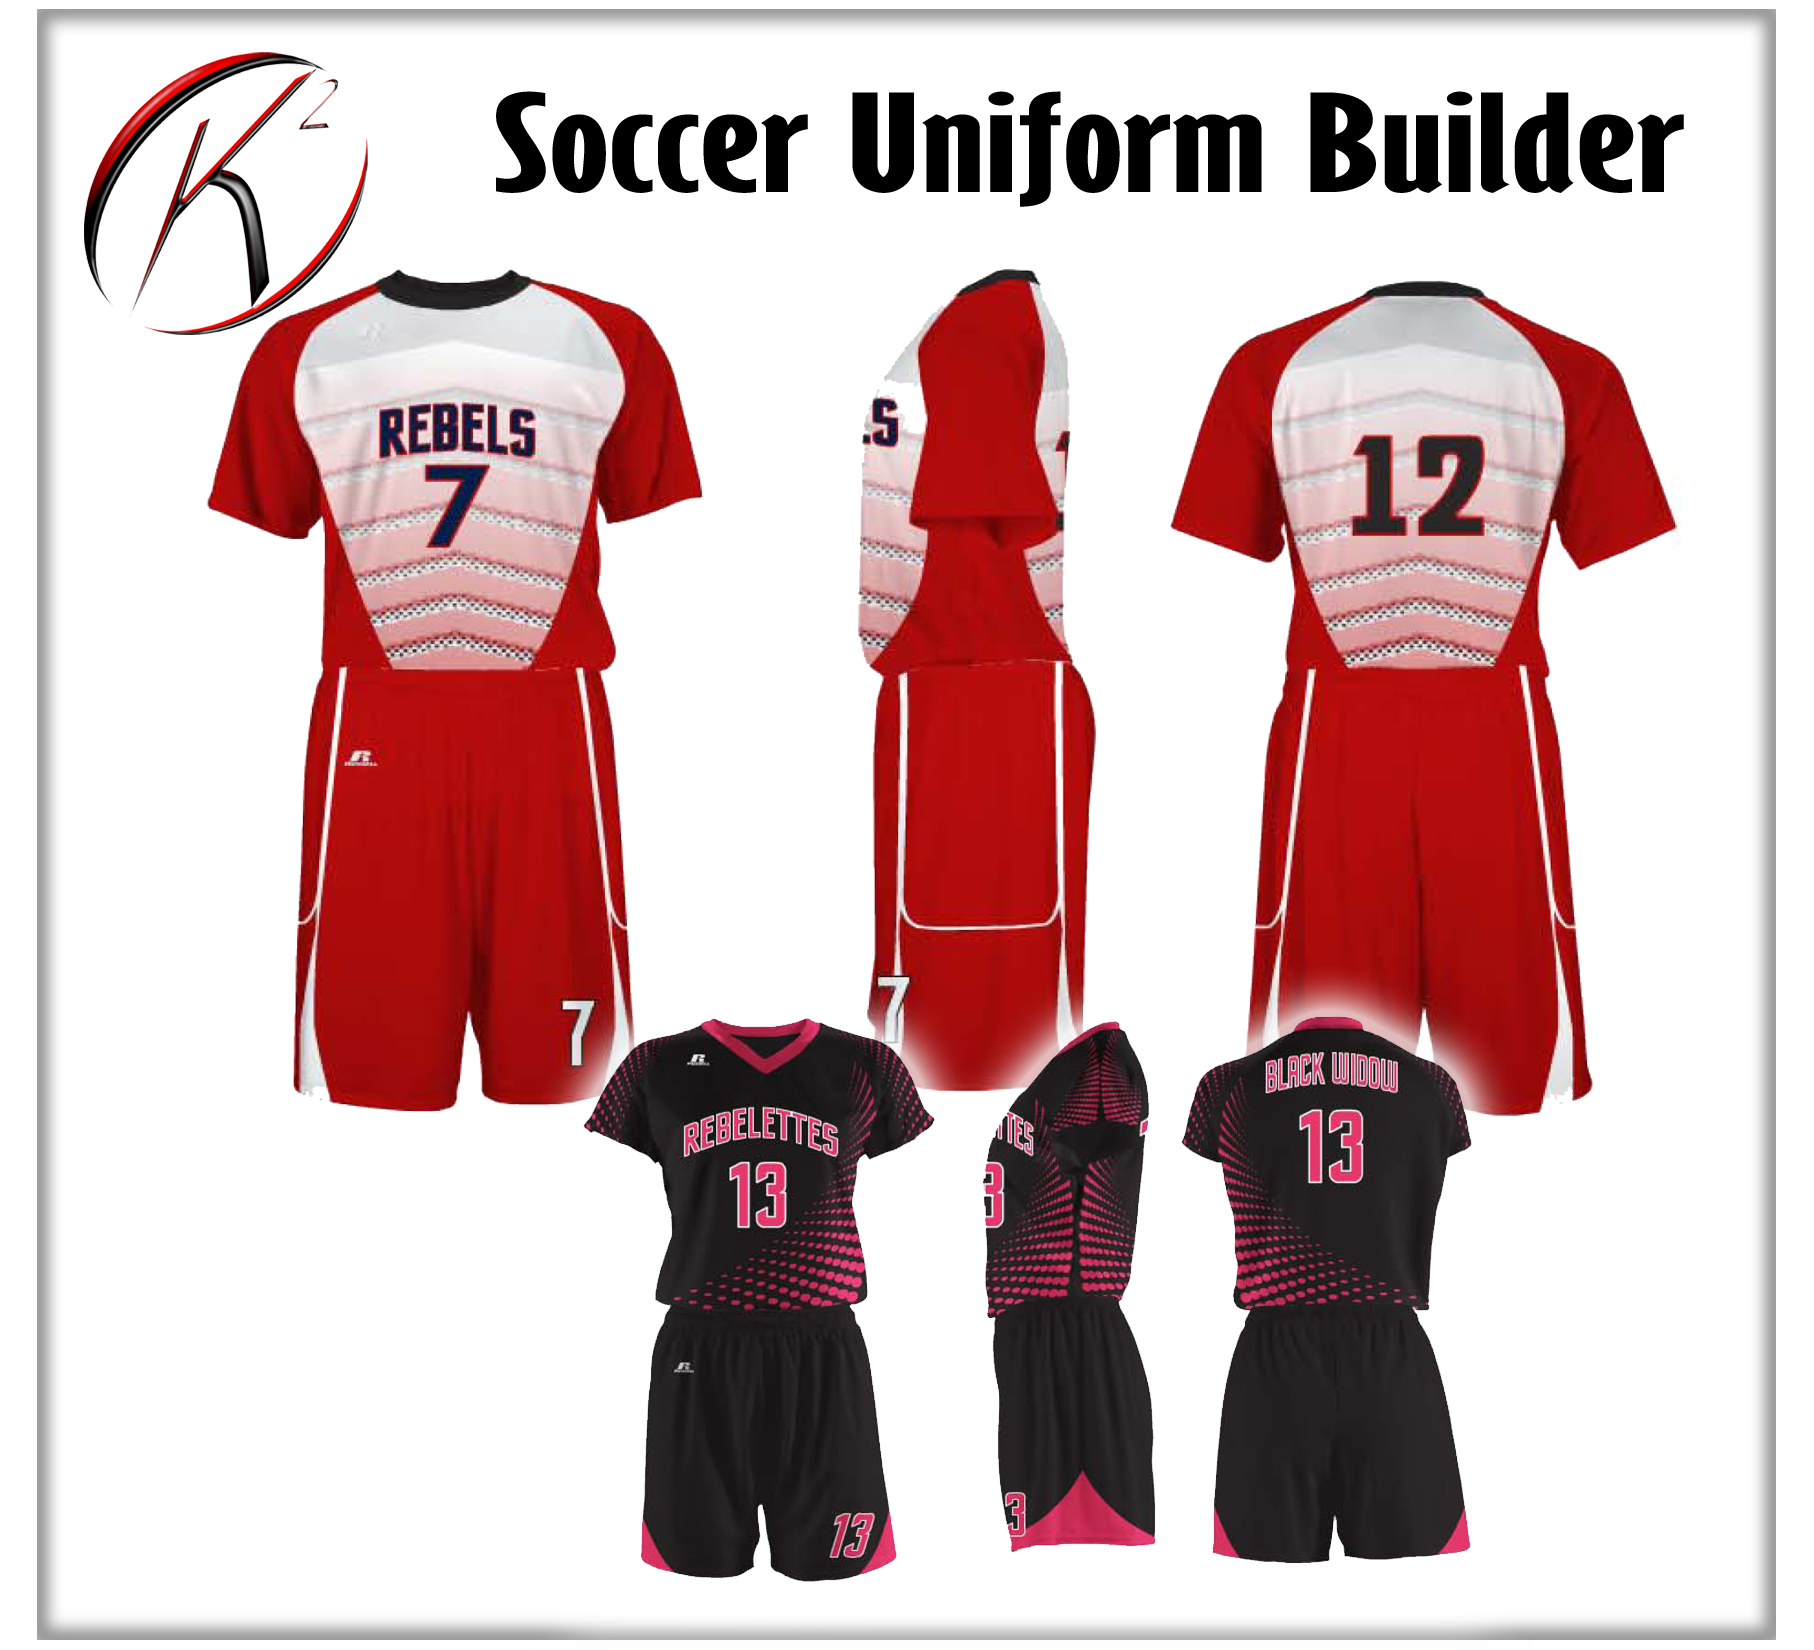 K2 - Soccer Uniform Builder.png